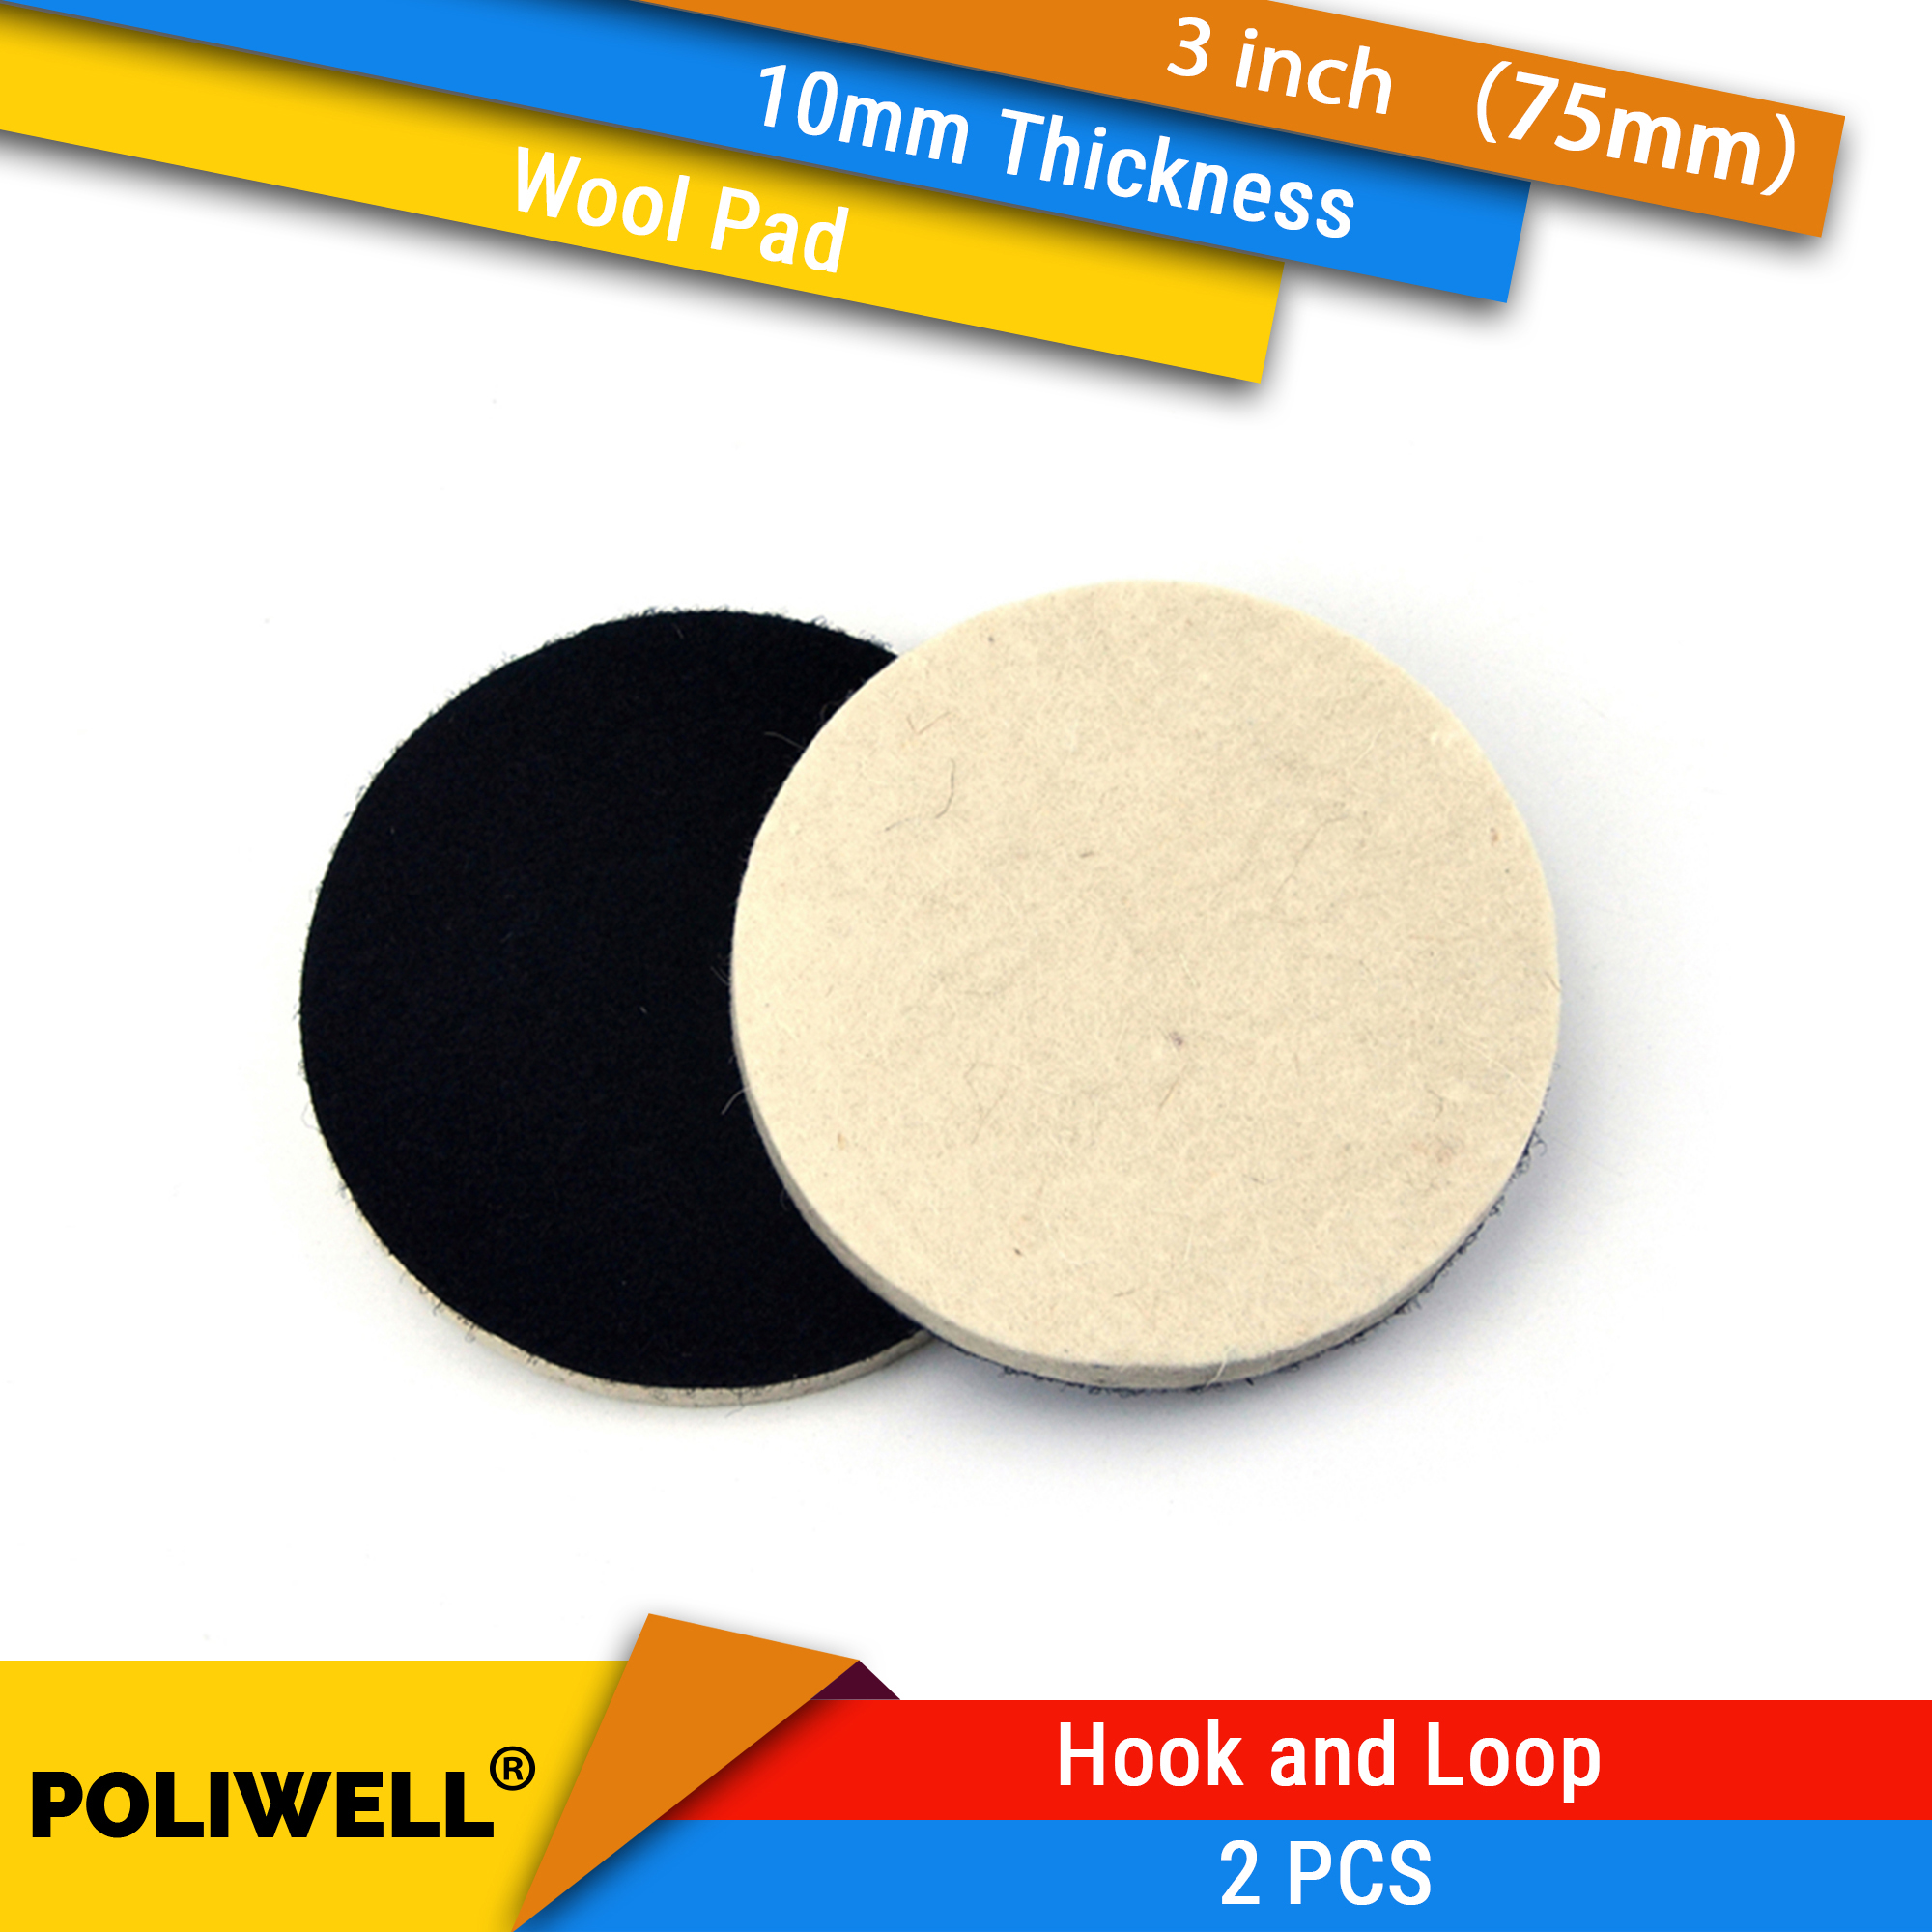 2PCS 3 Inch <font><b>75mm</b></font> Wool Polishing Pad <font><b>Disc</b></font> Hook and Loop Abrasive Pad for Car Metal Grinding Polishing Power Tools Accessories image